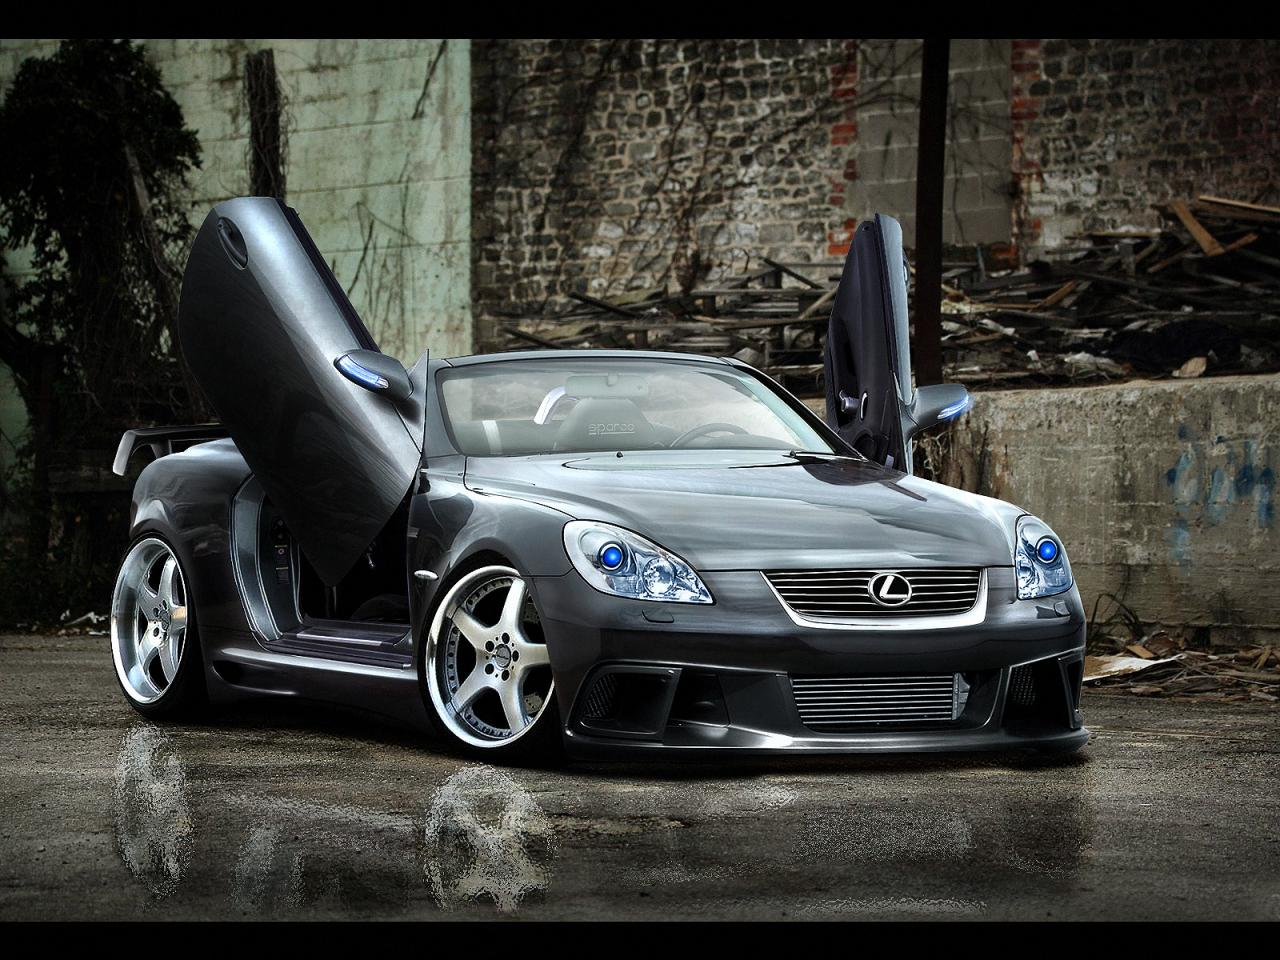 2010 lexus sc 430 information and photos zombiedrive. Black Bedroom Furniture Sets. Home Design Ideas